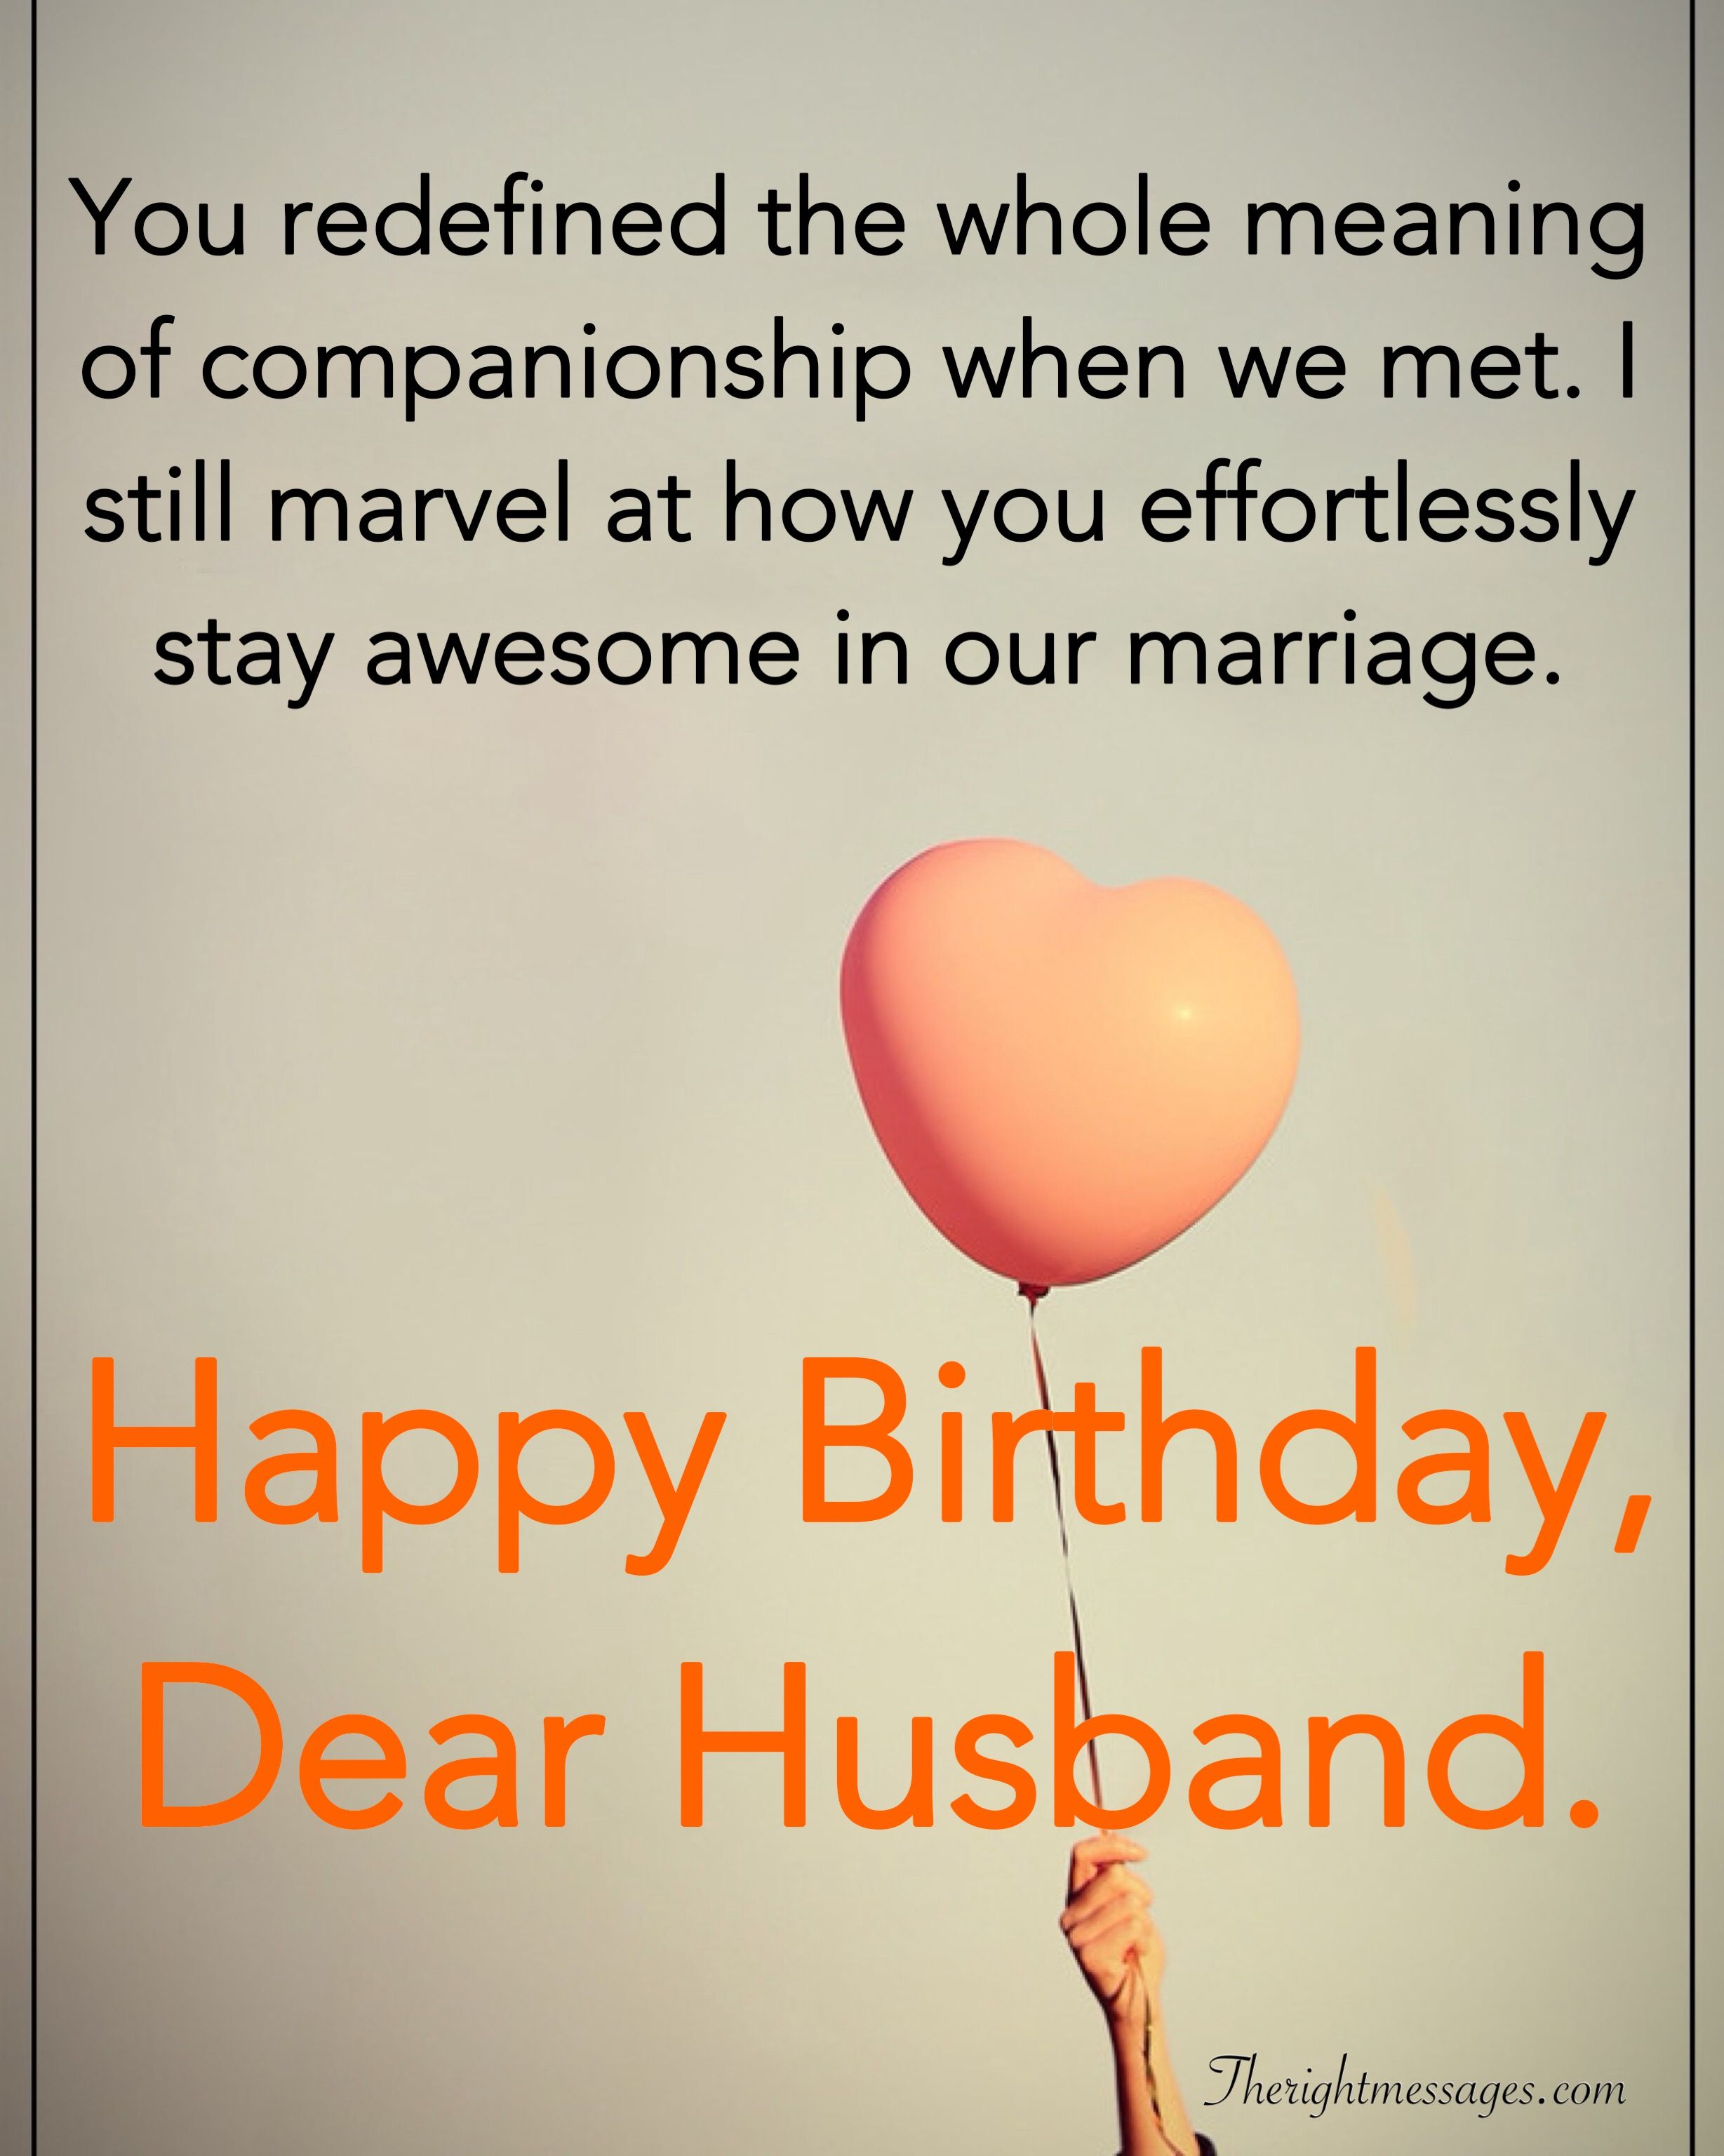 28 Birthday Wishes For Your Husband Romantic Funny Poems The Right Messages Birthday Wishes Funny Birthday Wish For Husband Funny Birthday Message